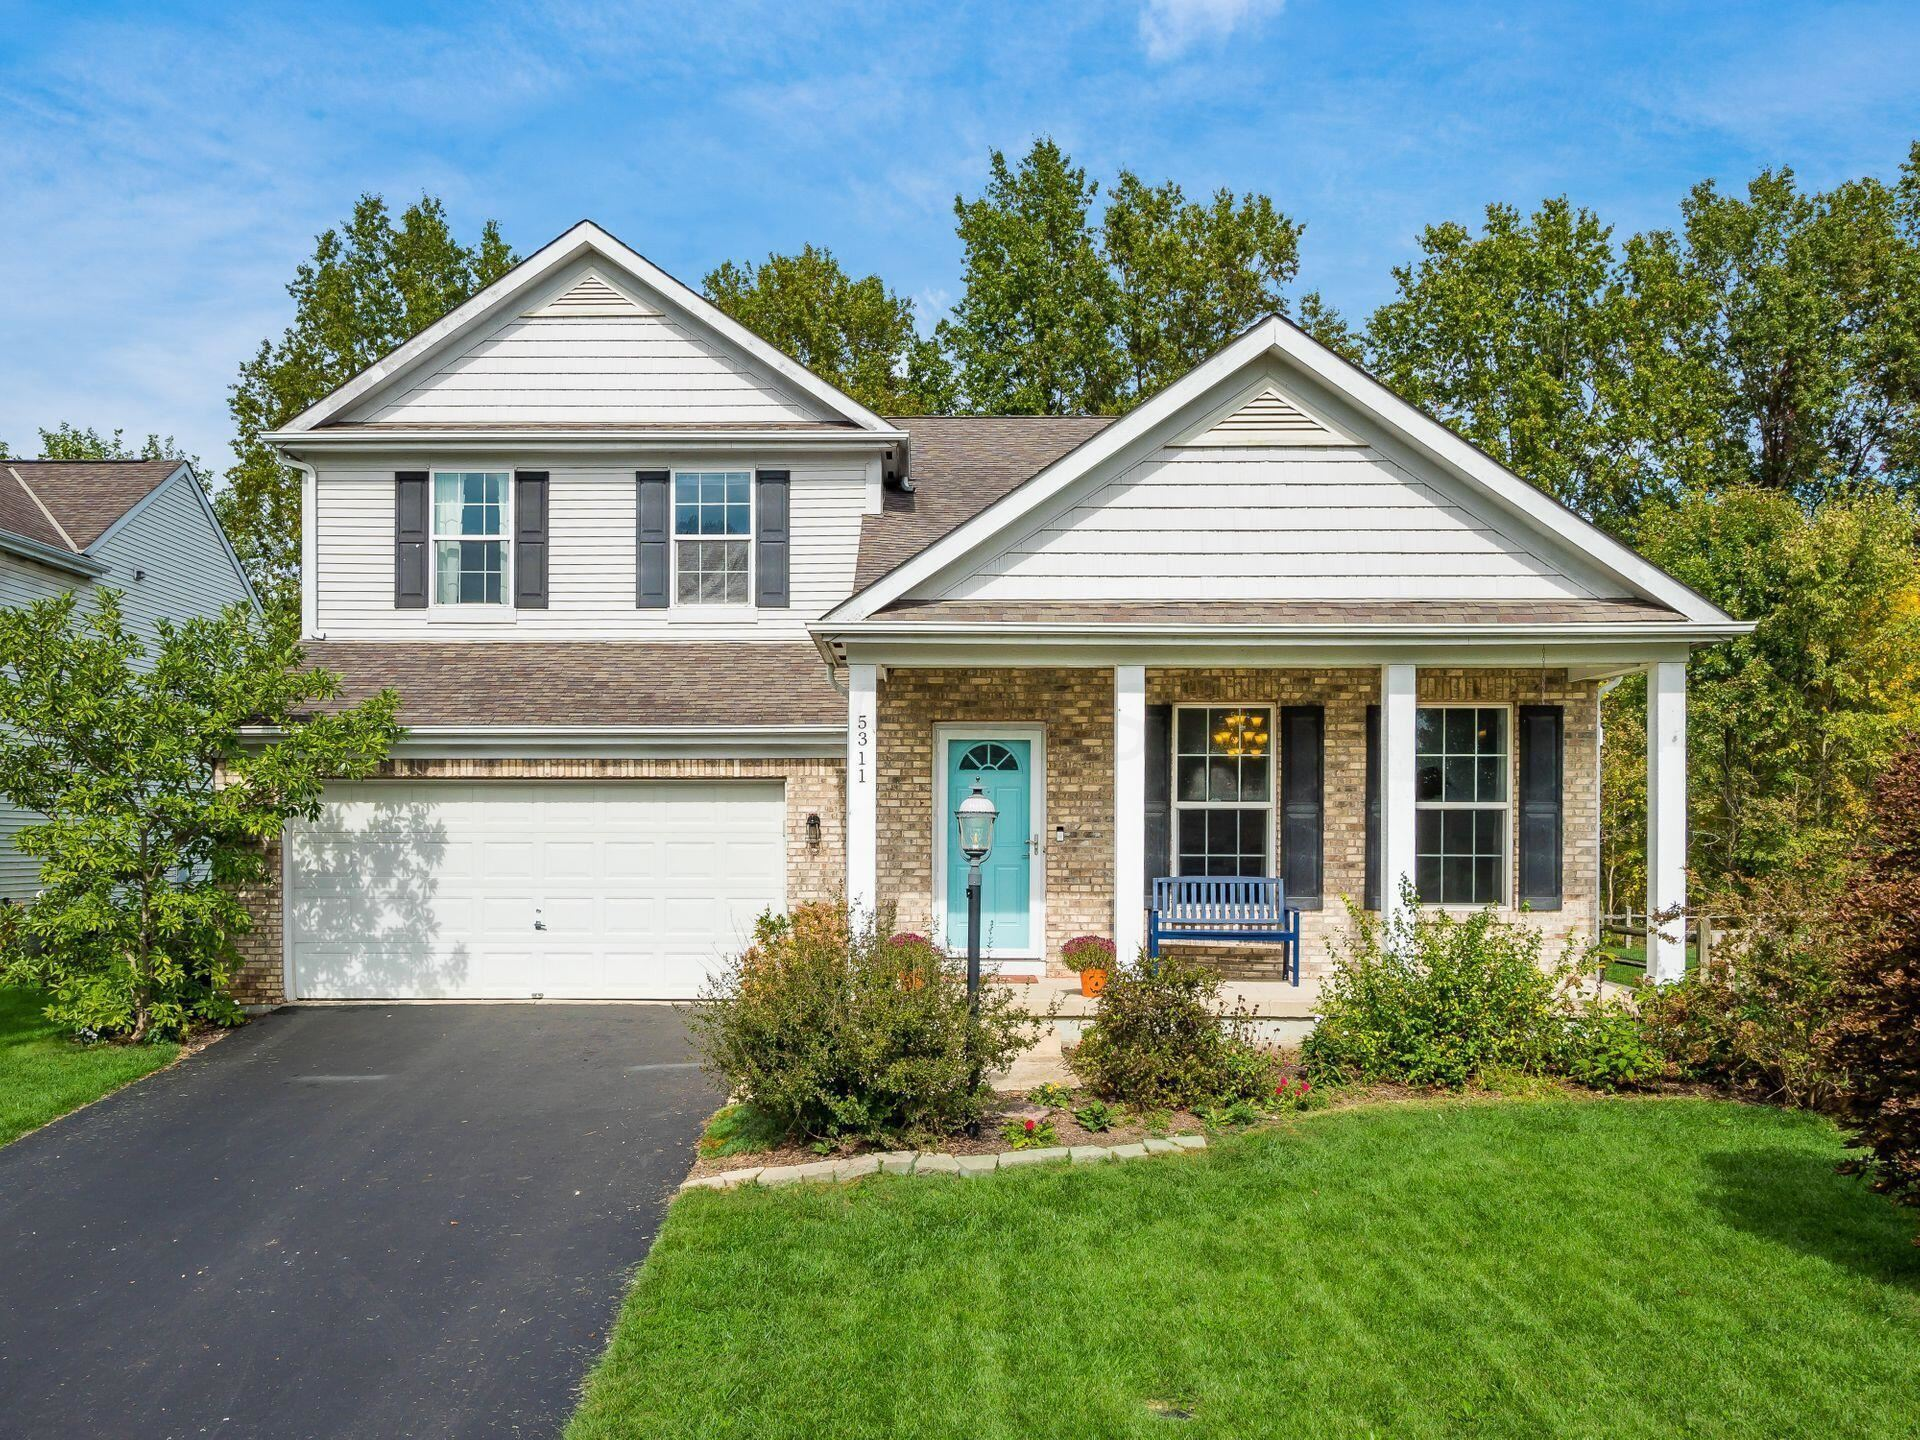 Photo of 5311 Covington Meadows Drive, Westerville, OH 43082 (MLS # 221039779)